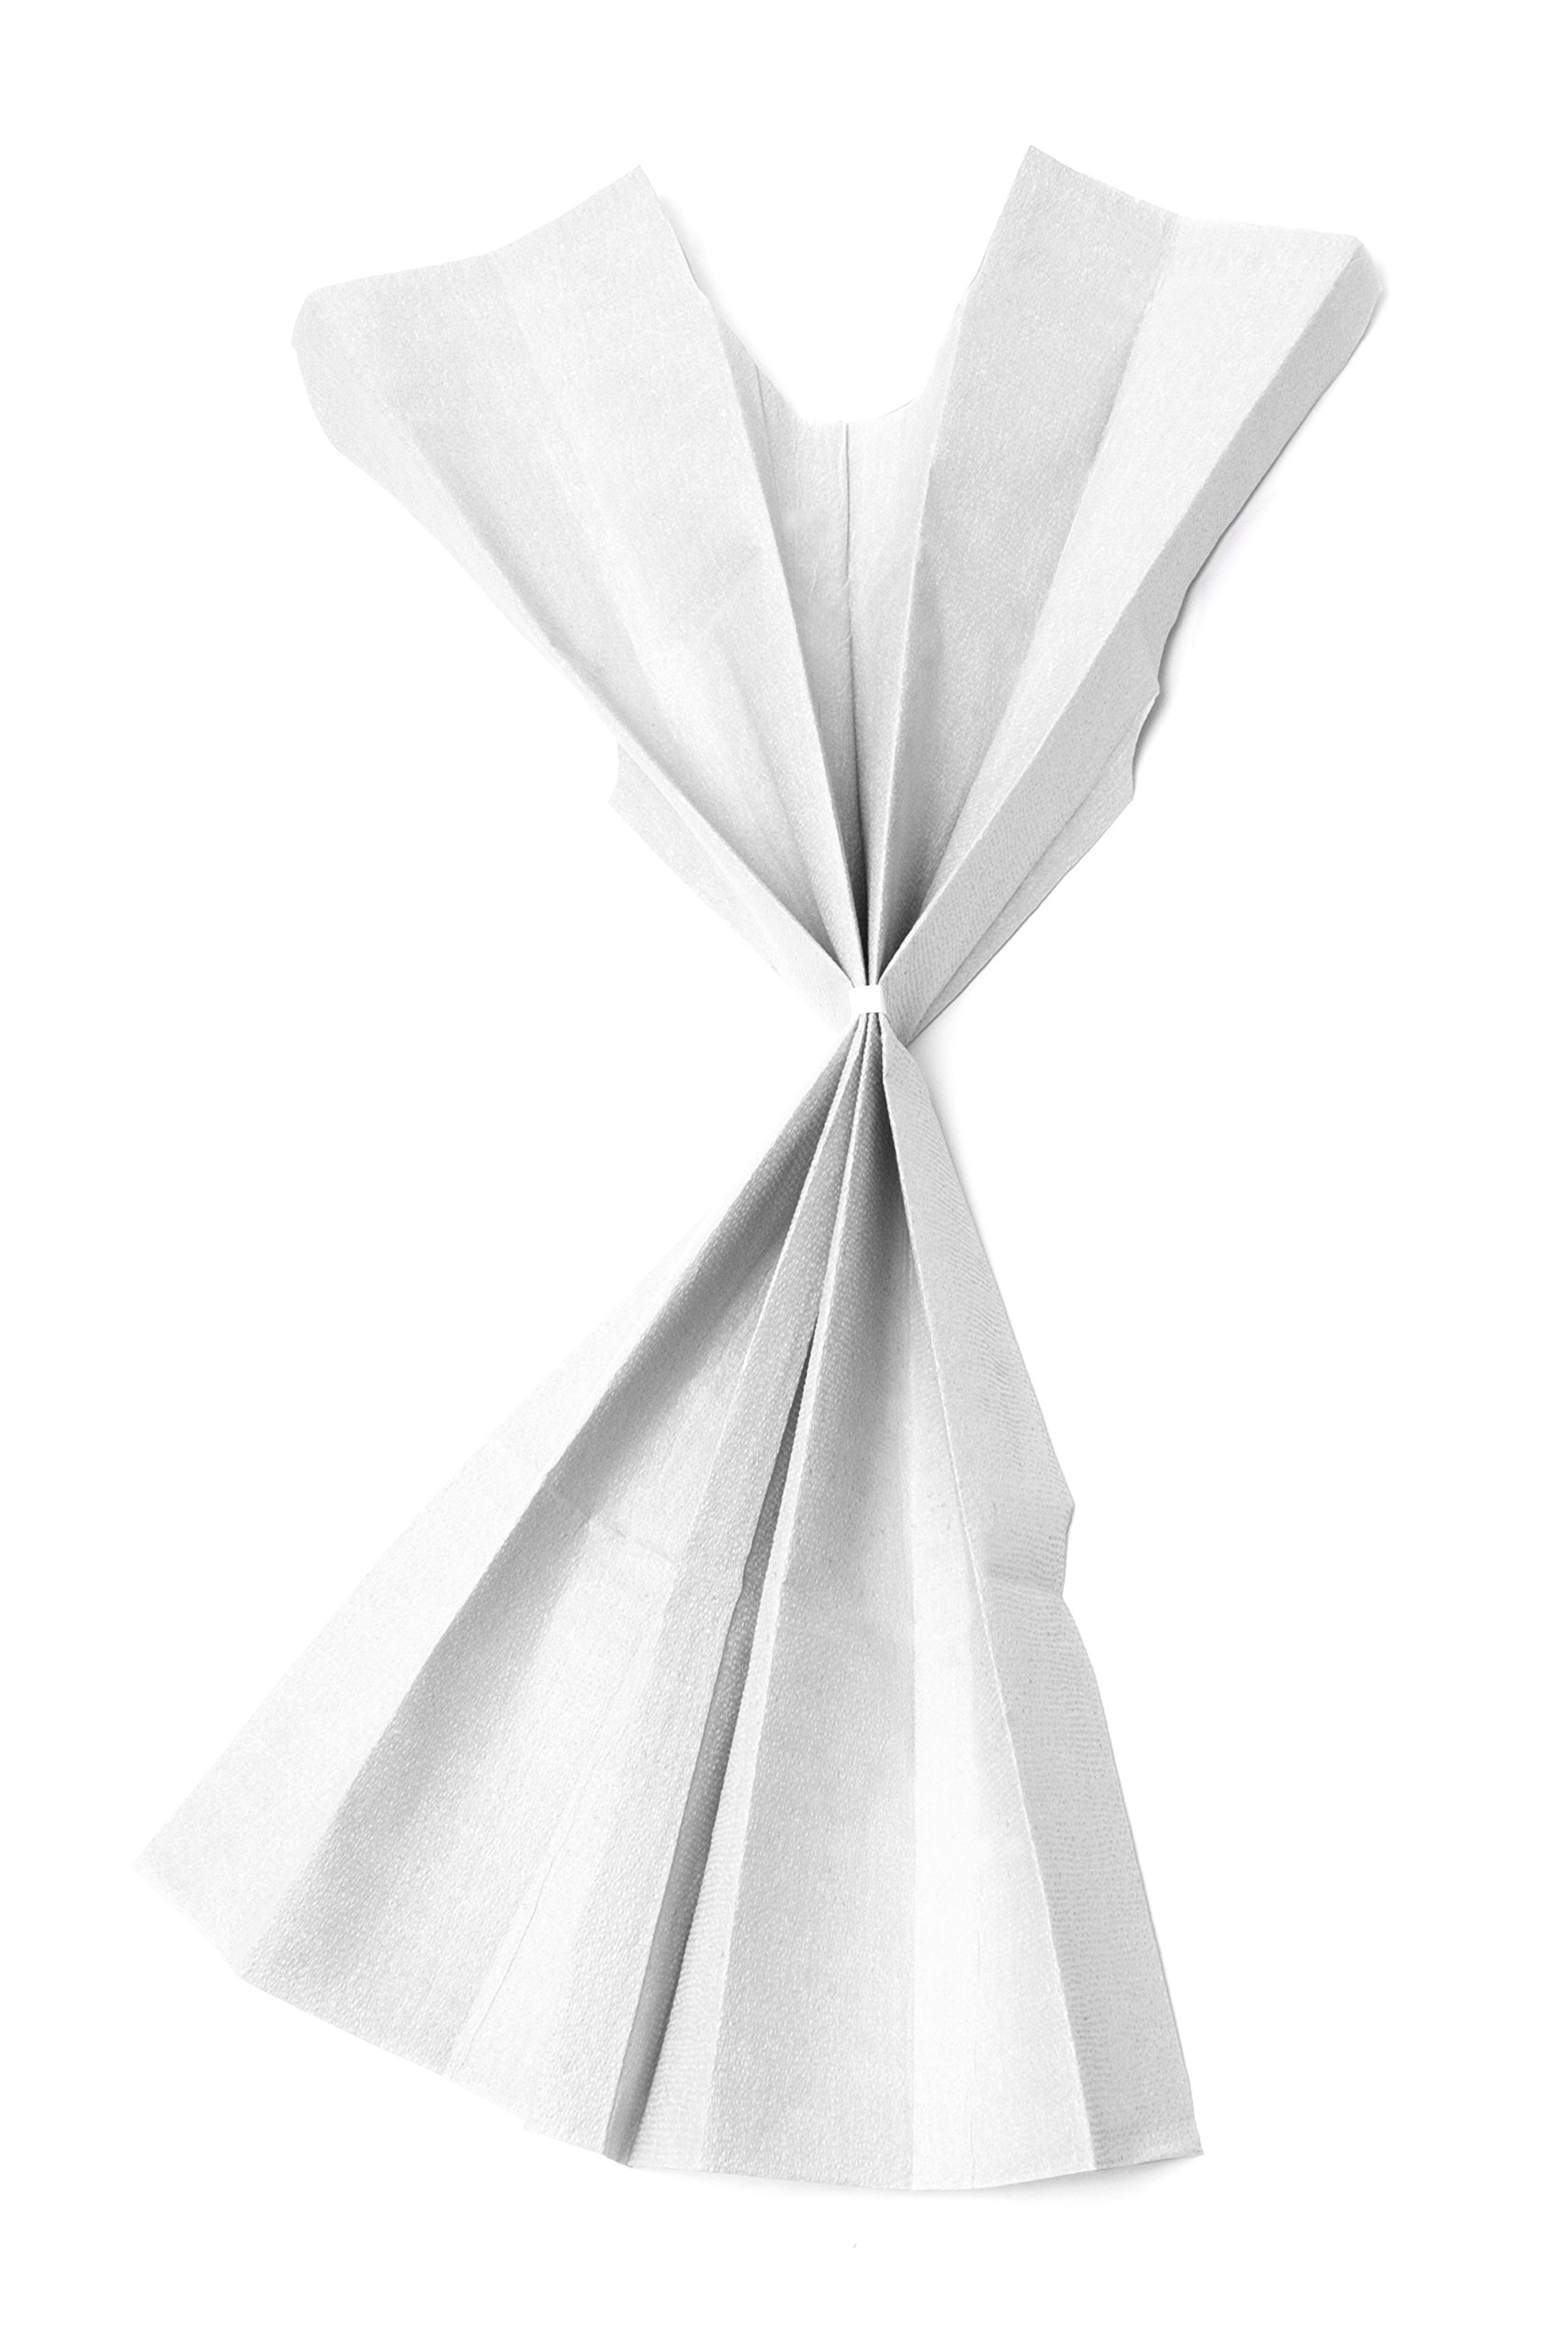 Avalon Papers 811 Standard Gown, Tissue/Poly/Tissue, White (Pack of 50)